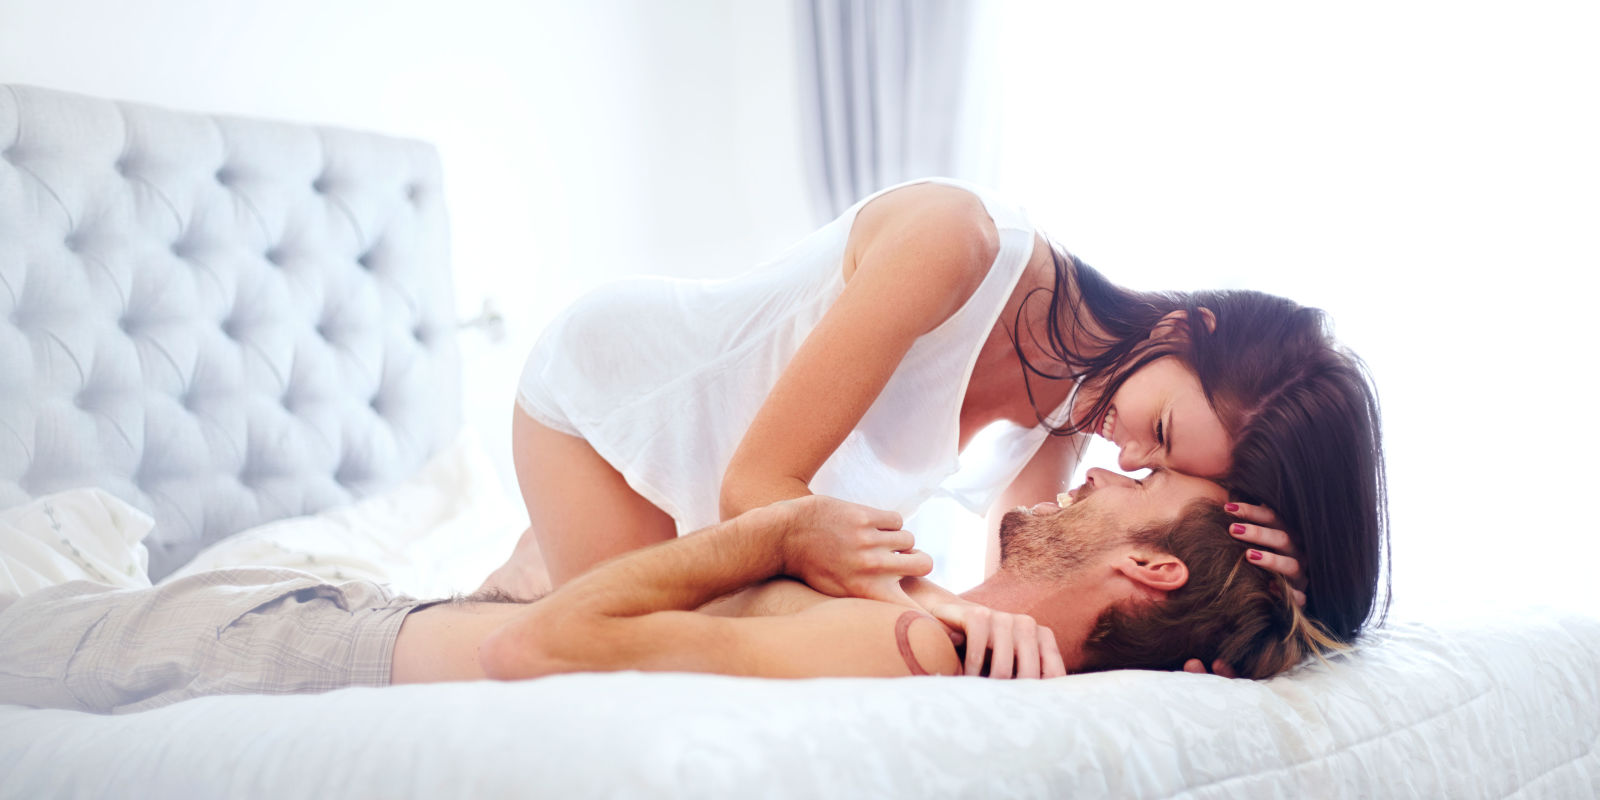 sex is good for mental and physical health sexual difficulties woodbridge therapy